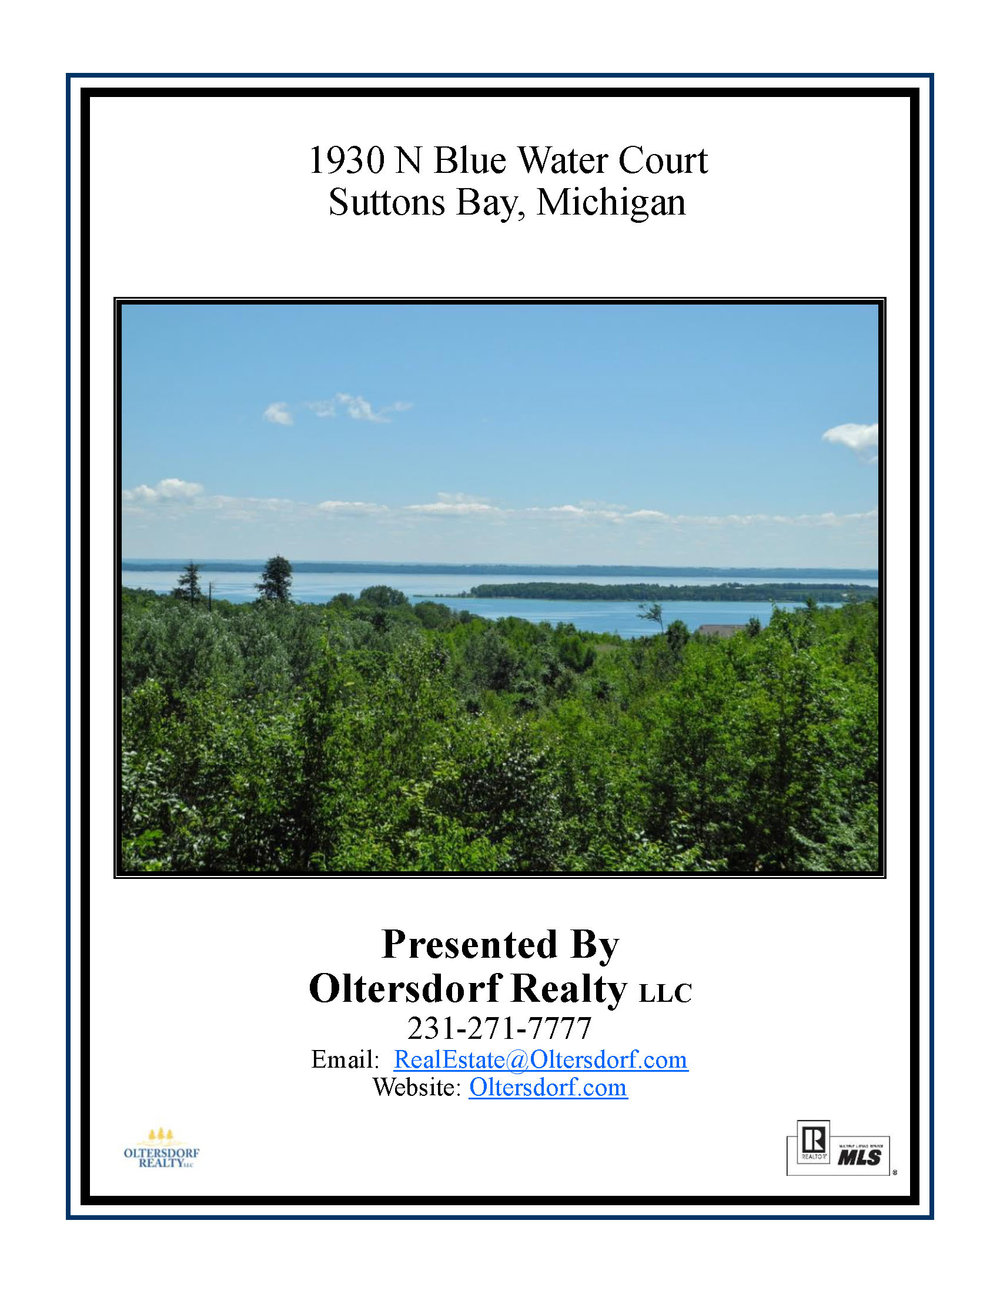 1930 N Blue Water Ct, Suttons Bay, Leelanau County, Vacant Waterview Lot For Sale By Oltersdorf Realty LLC - Marketing Packet (1).jpg